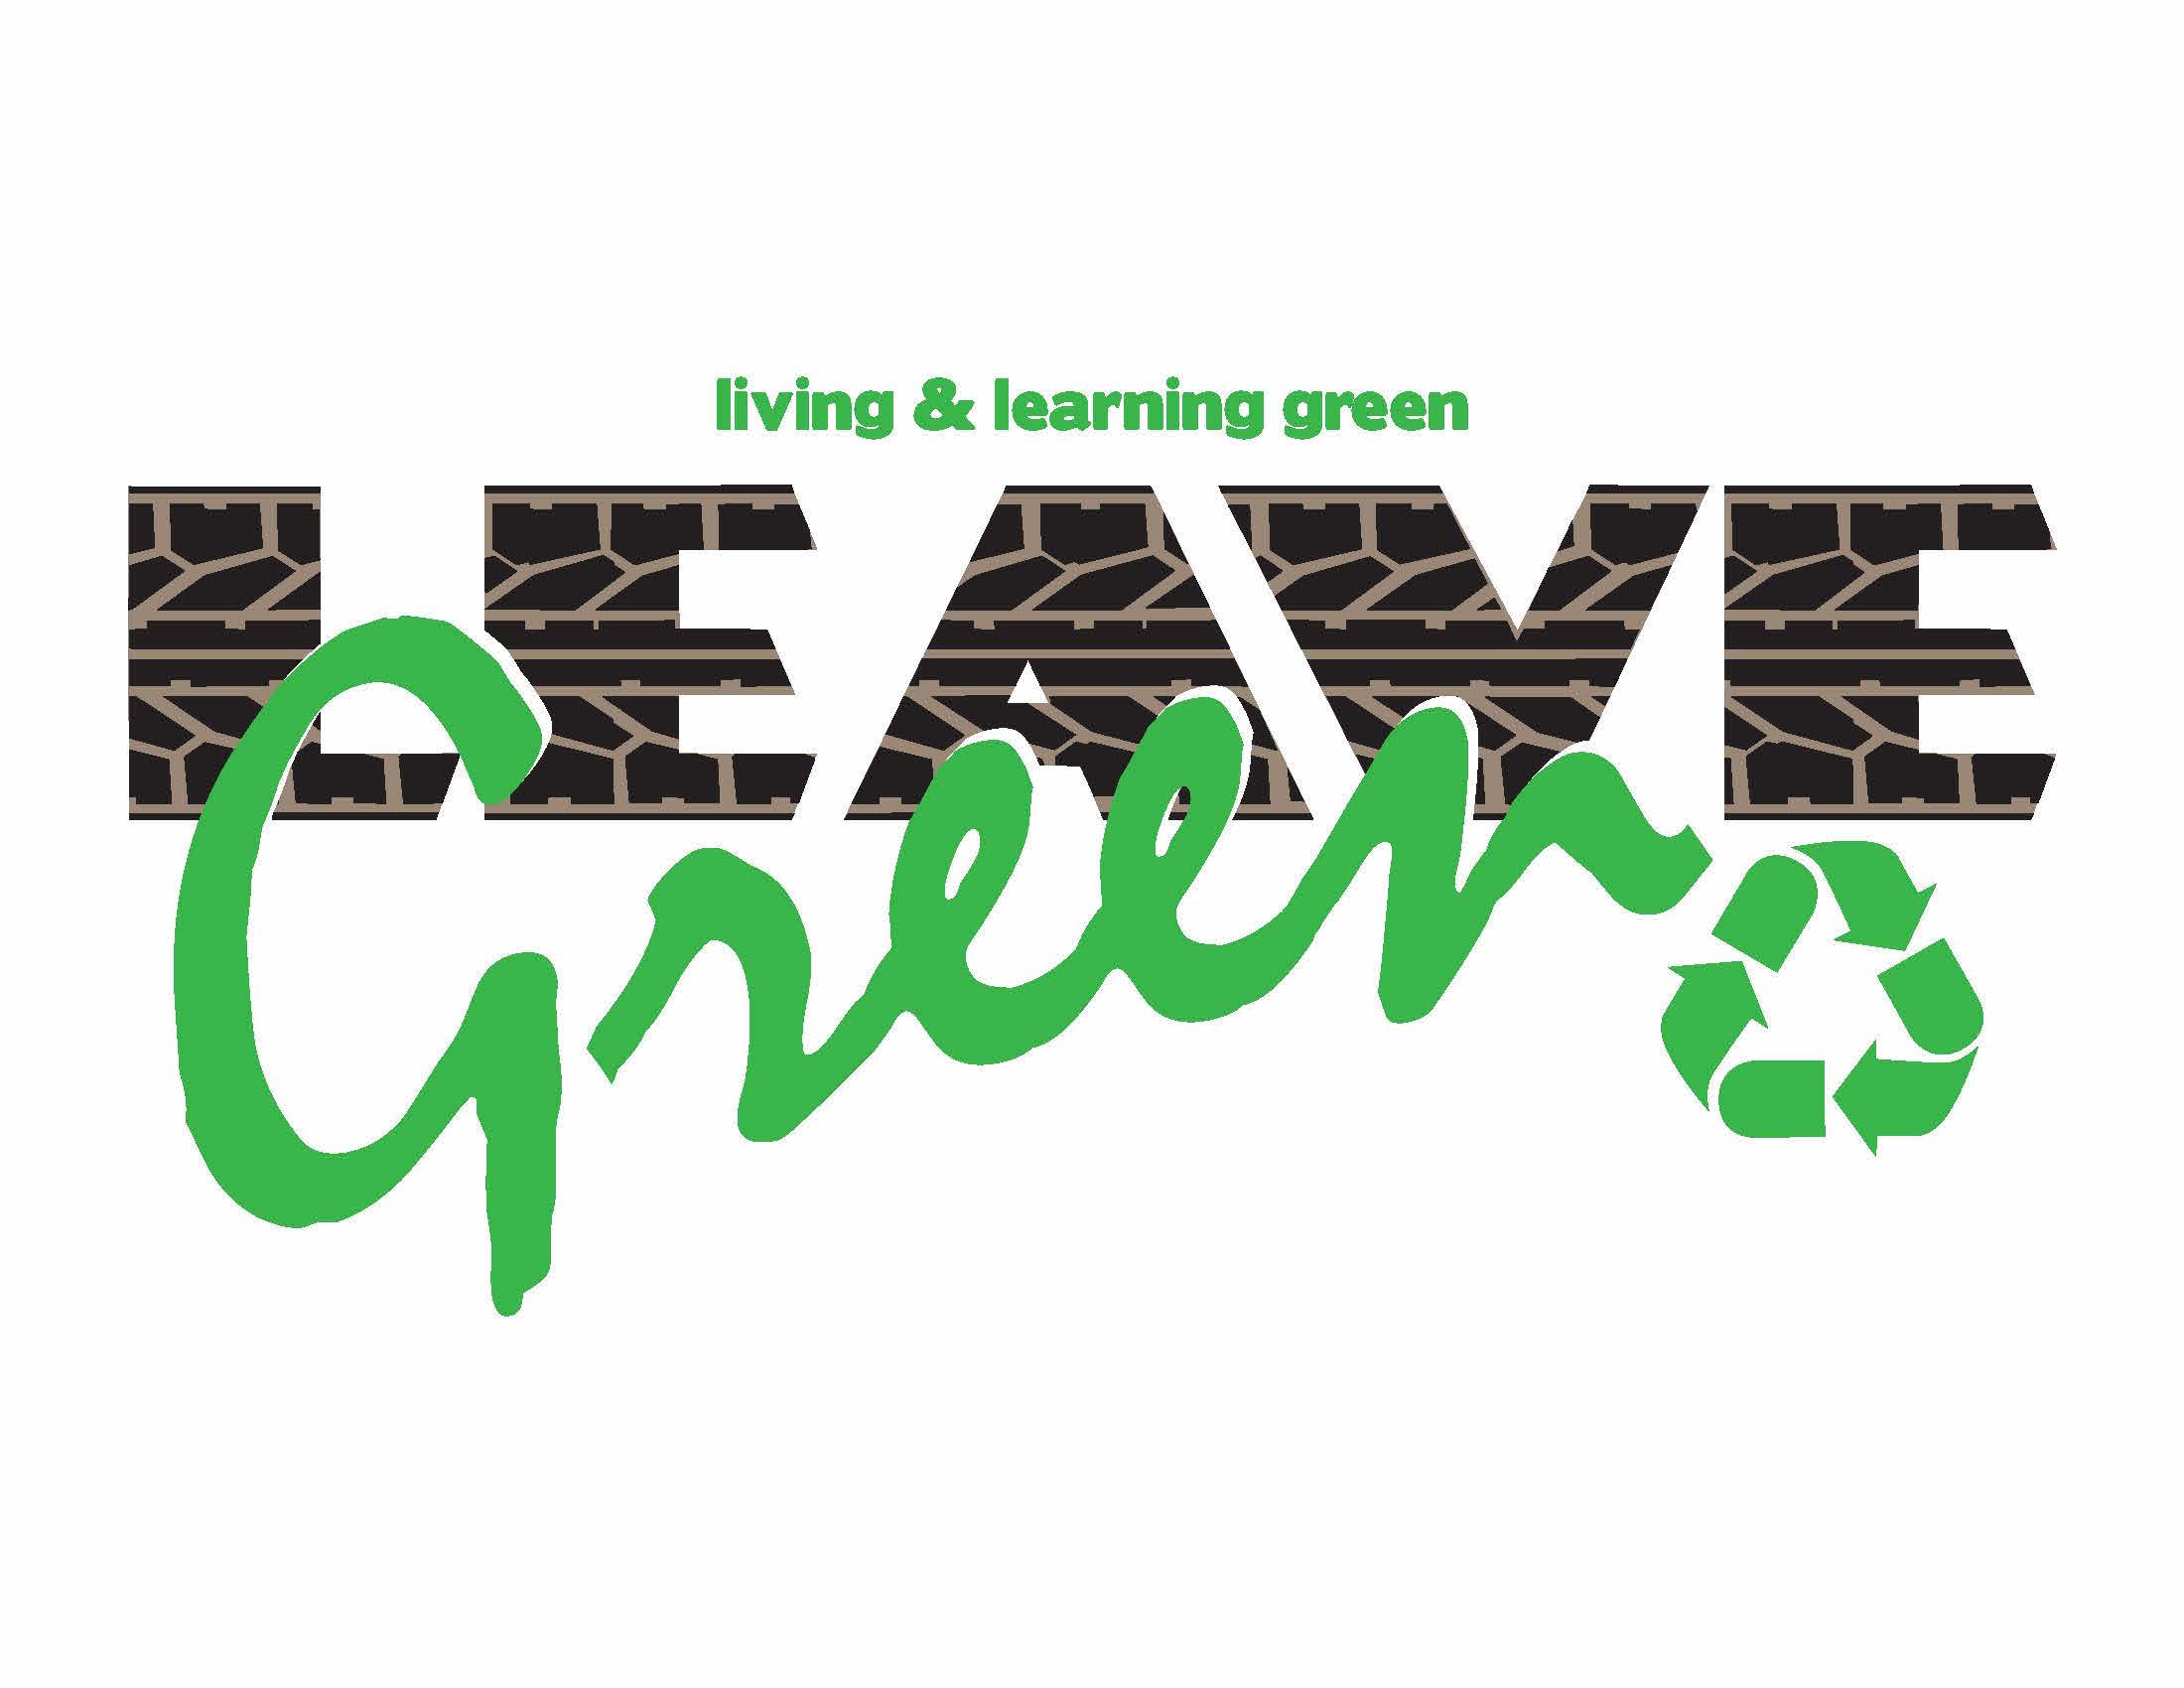 Leave Green: Application Open for 2016 Donation of Items